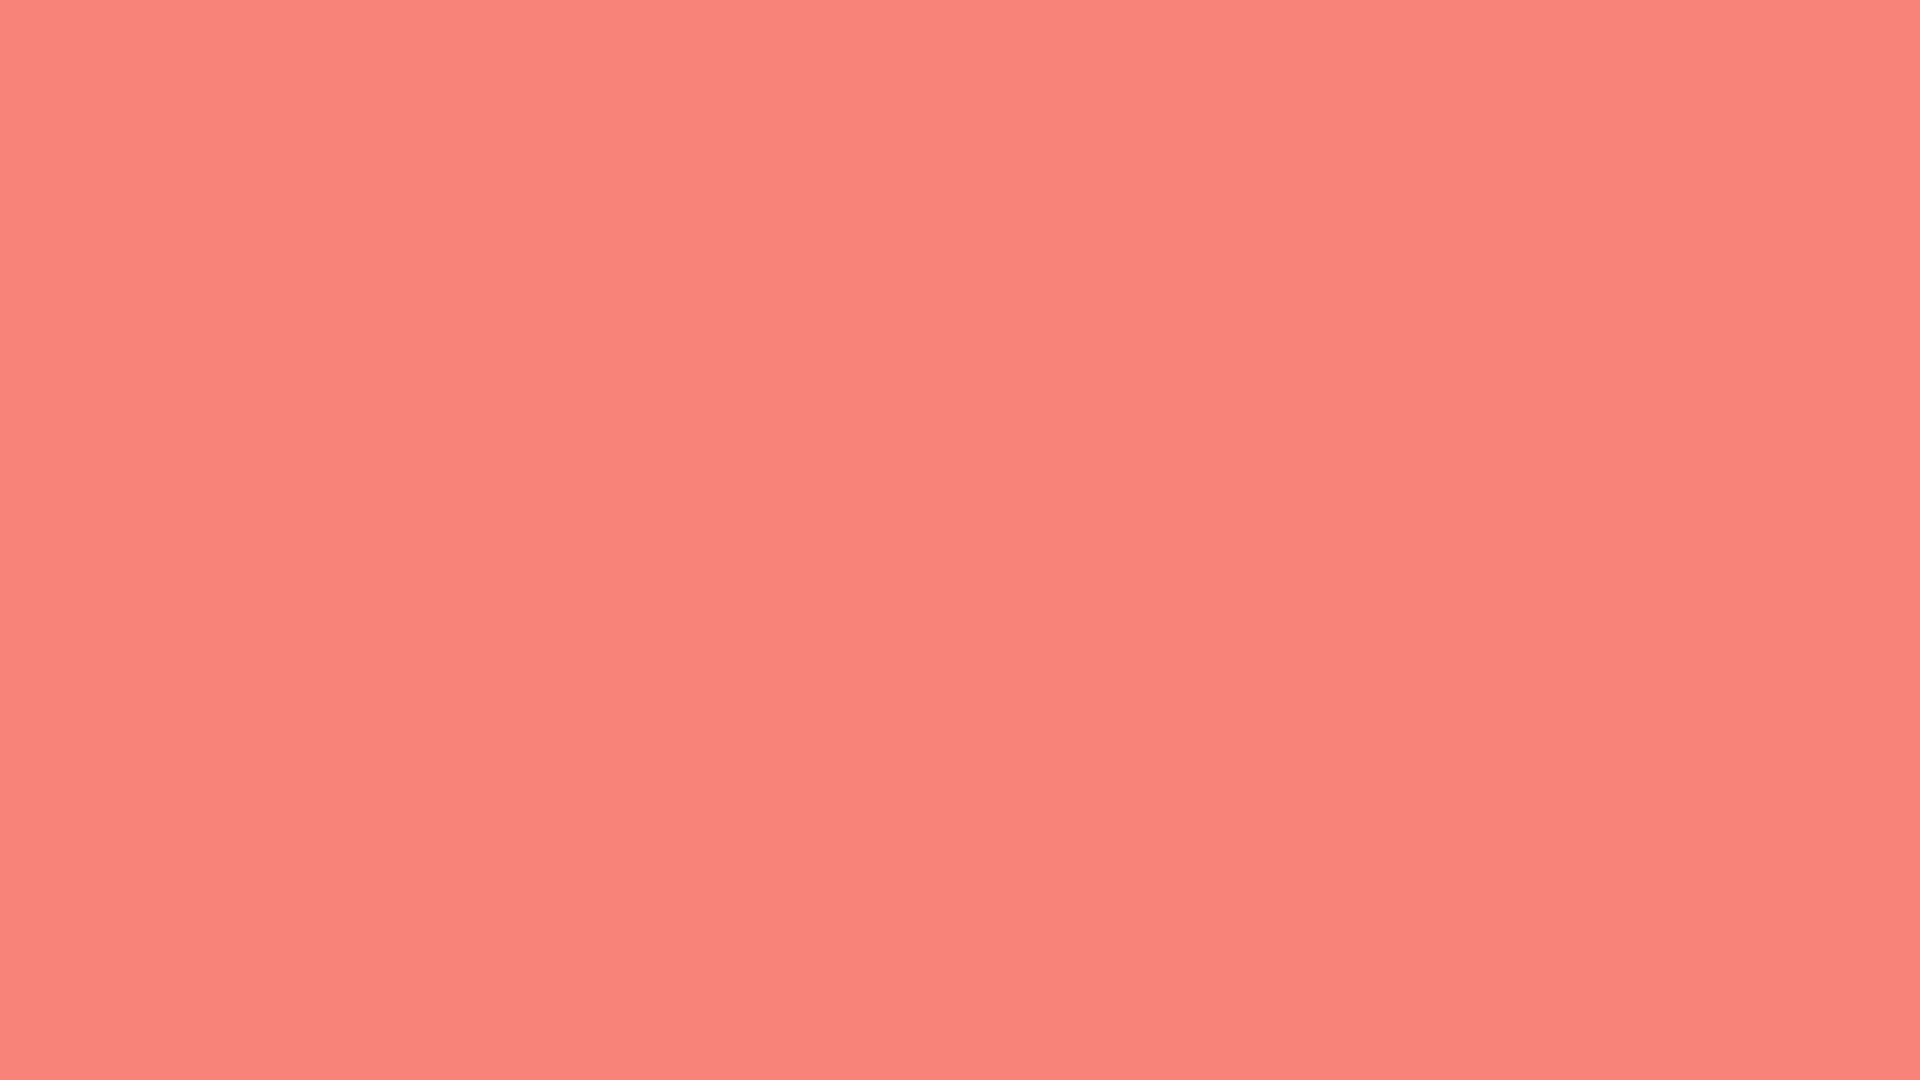 1920x1080 coral pink solid color background